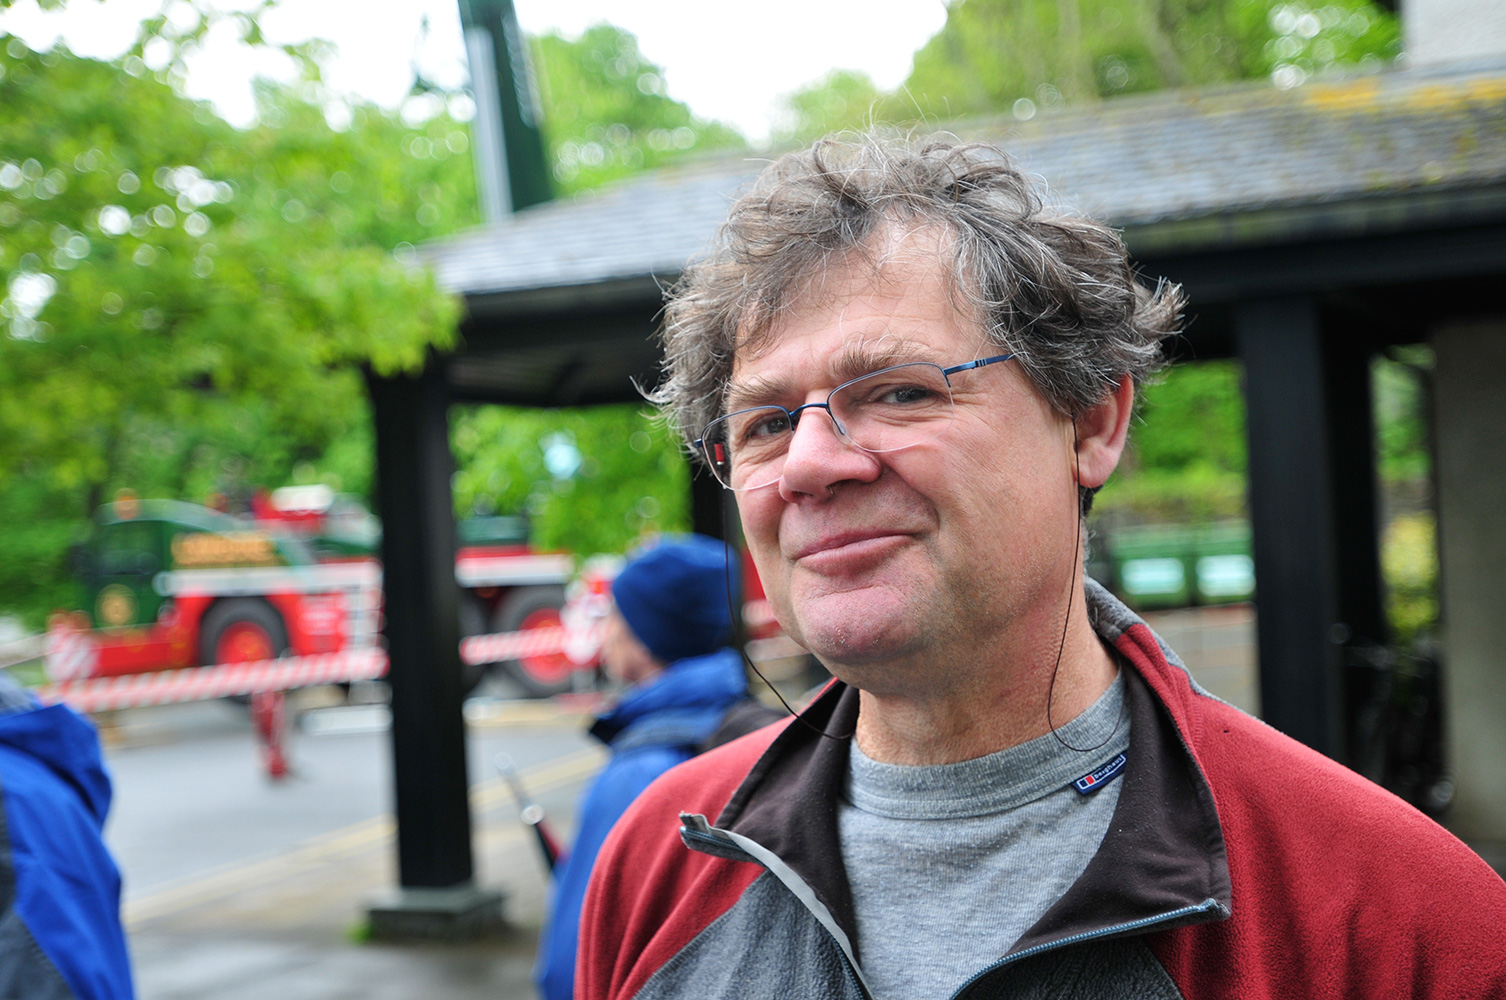 Mountain writer, photographer, and climber who has undertaken many expeditions around the world. At the Keswick Mountain Festival in 2009